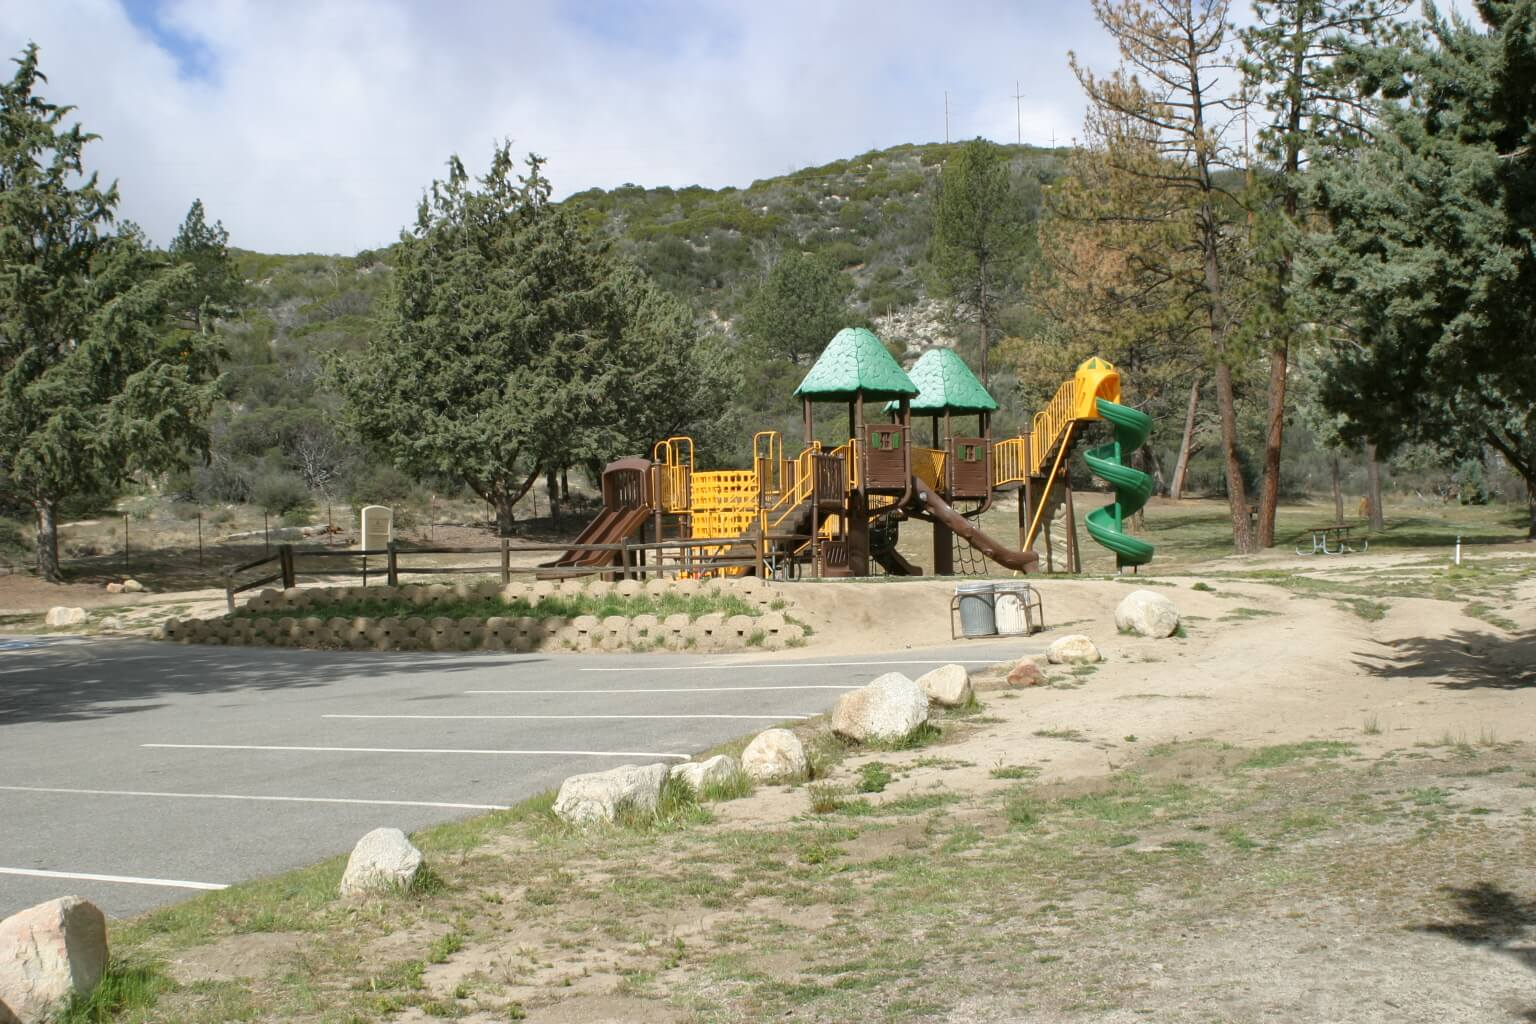 Riverside County Parks Campgrounds_Hurkey Creek Campground Playground